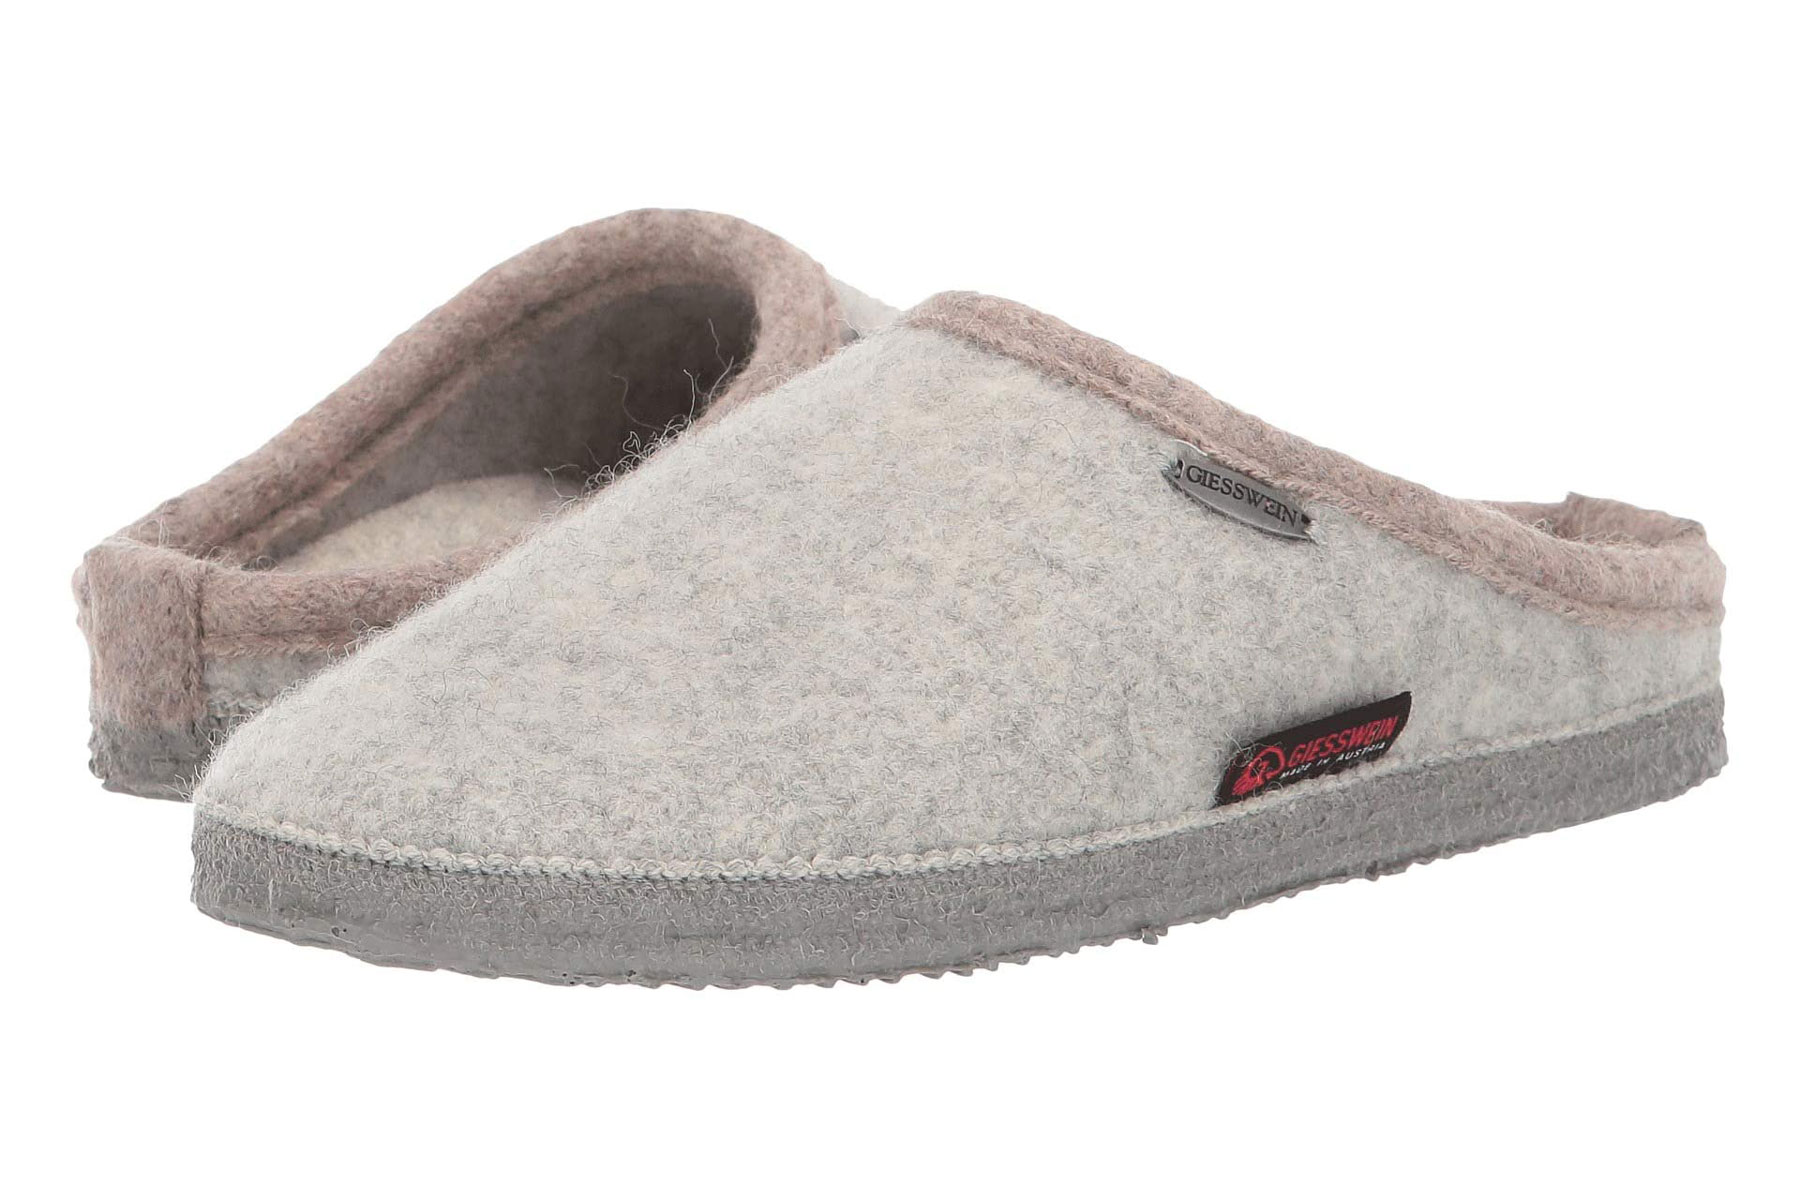 These slippers are made from 100 percent natural boiled wool, so they'll be sure to keep your feet warm all winter long, while remaining impressively breathable.To buy: zappos.com, $94Love a great deal? Sign up for our T+L Recommends newsletter and we'll send you our favorite travel products each week.